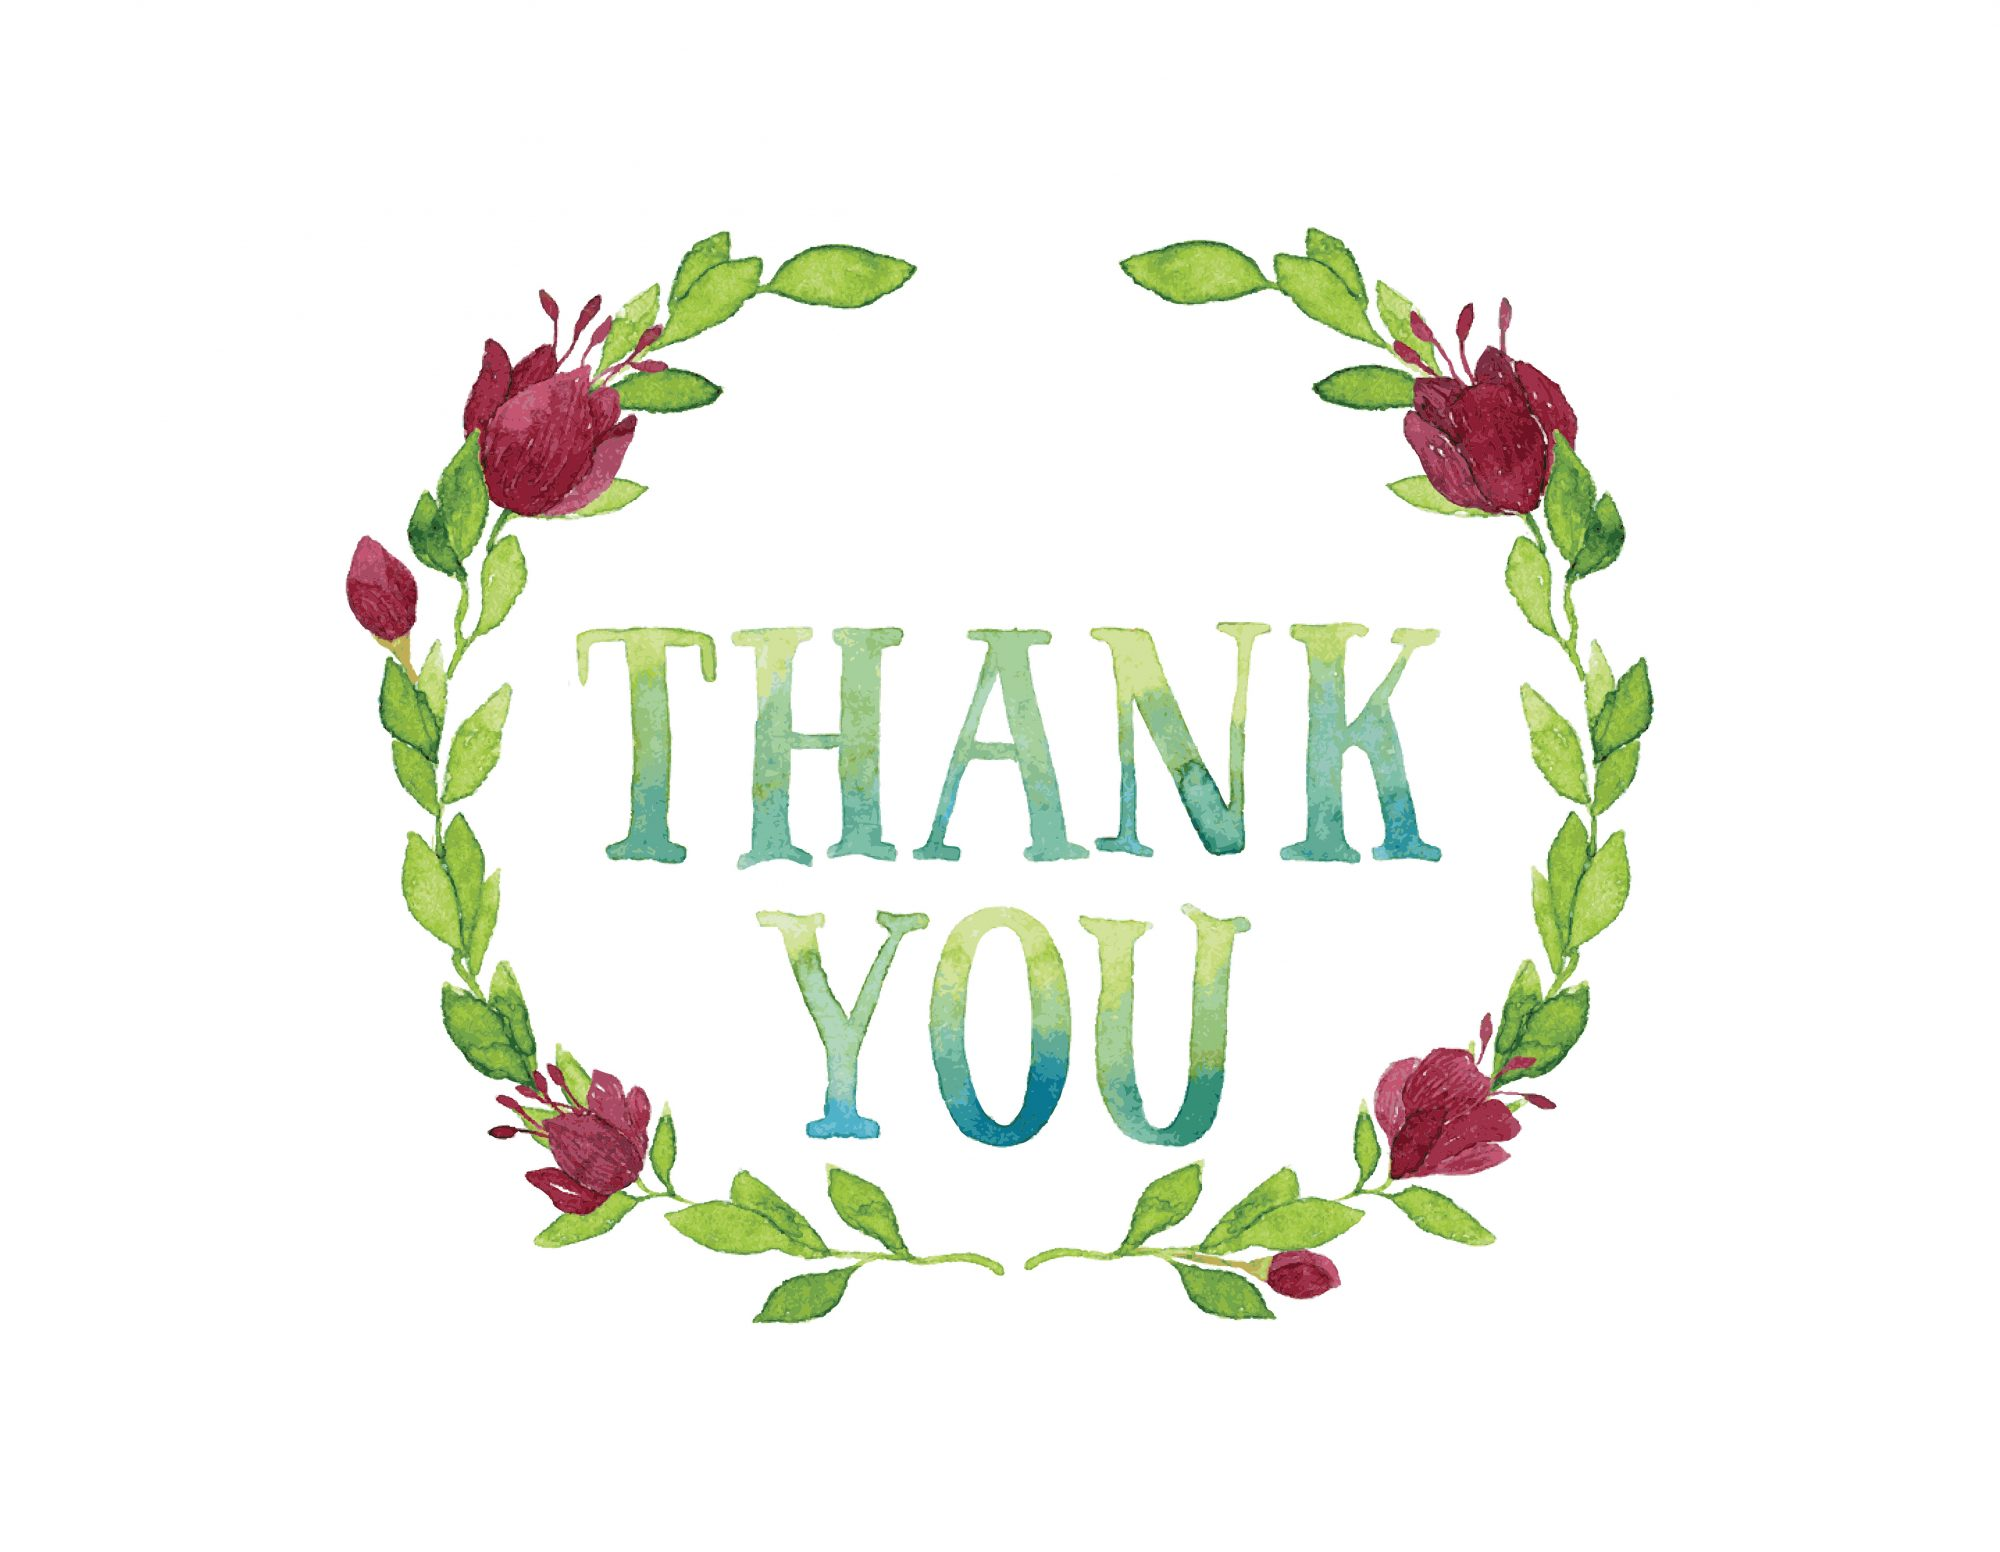 Thank-You Note Image